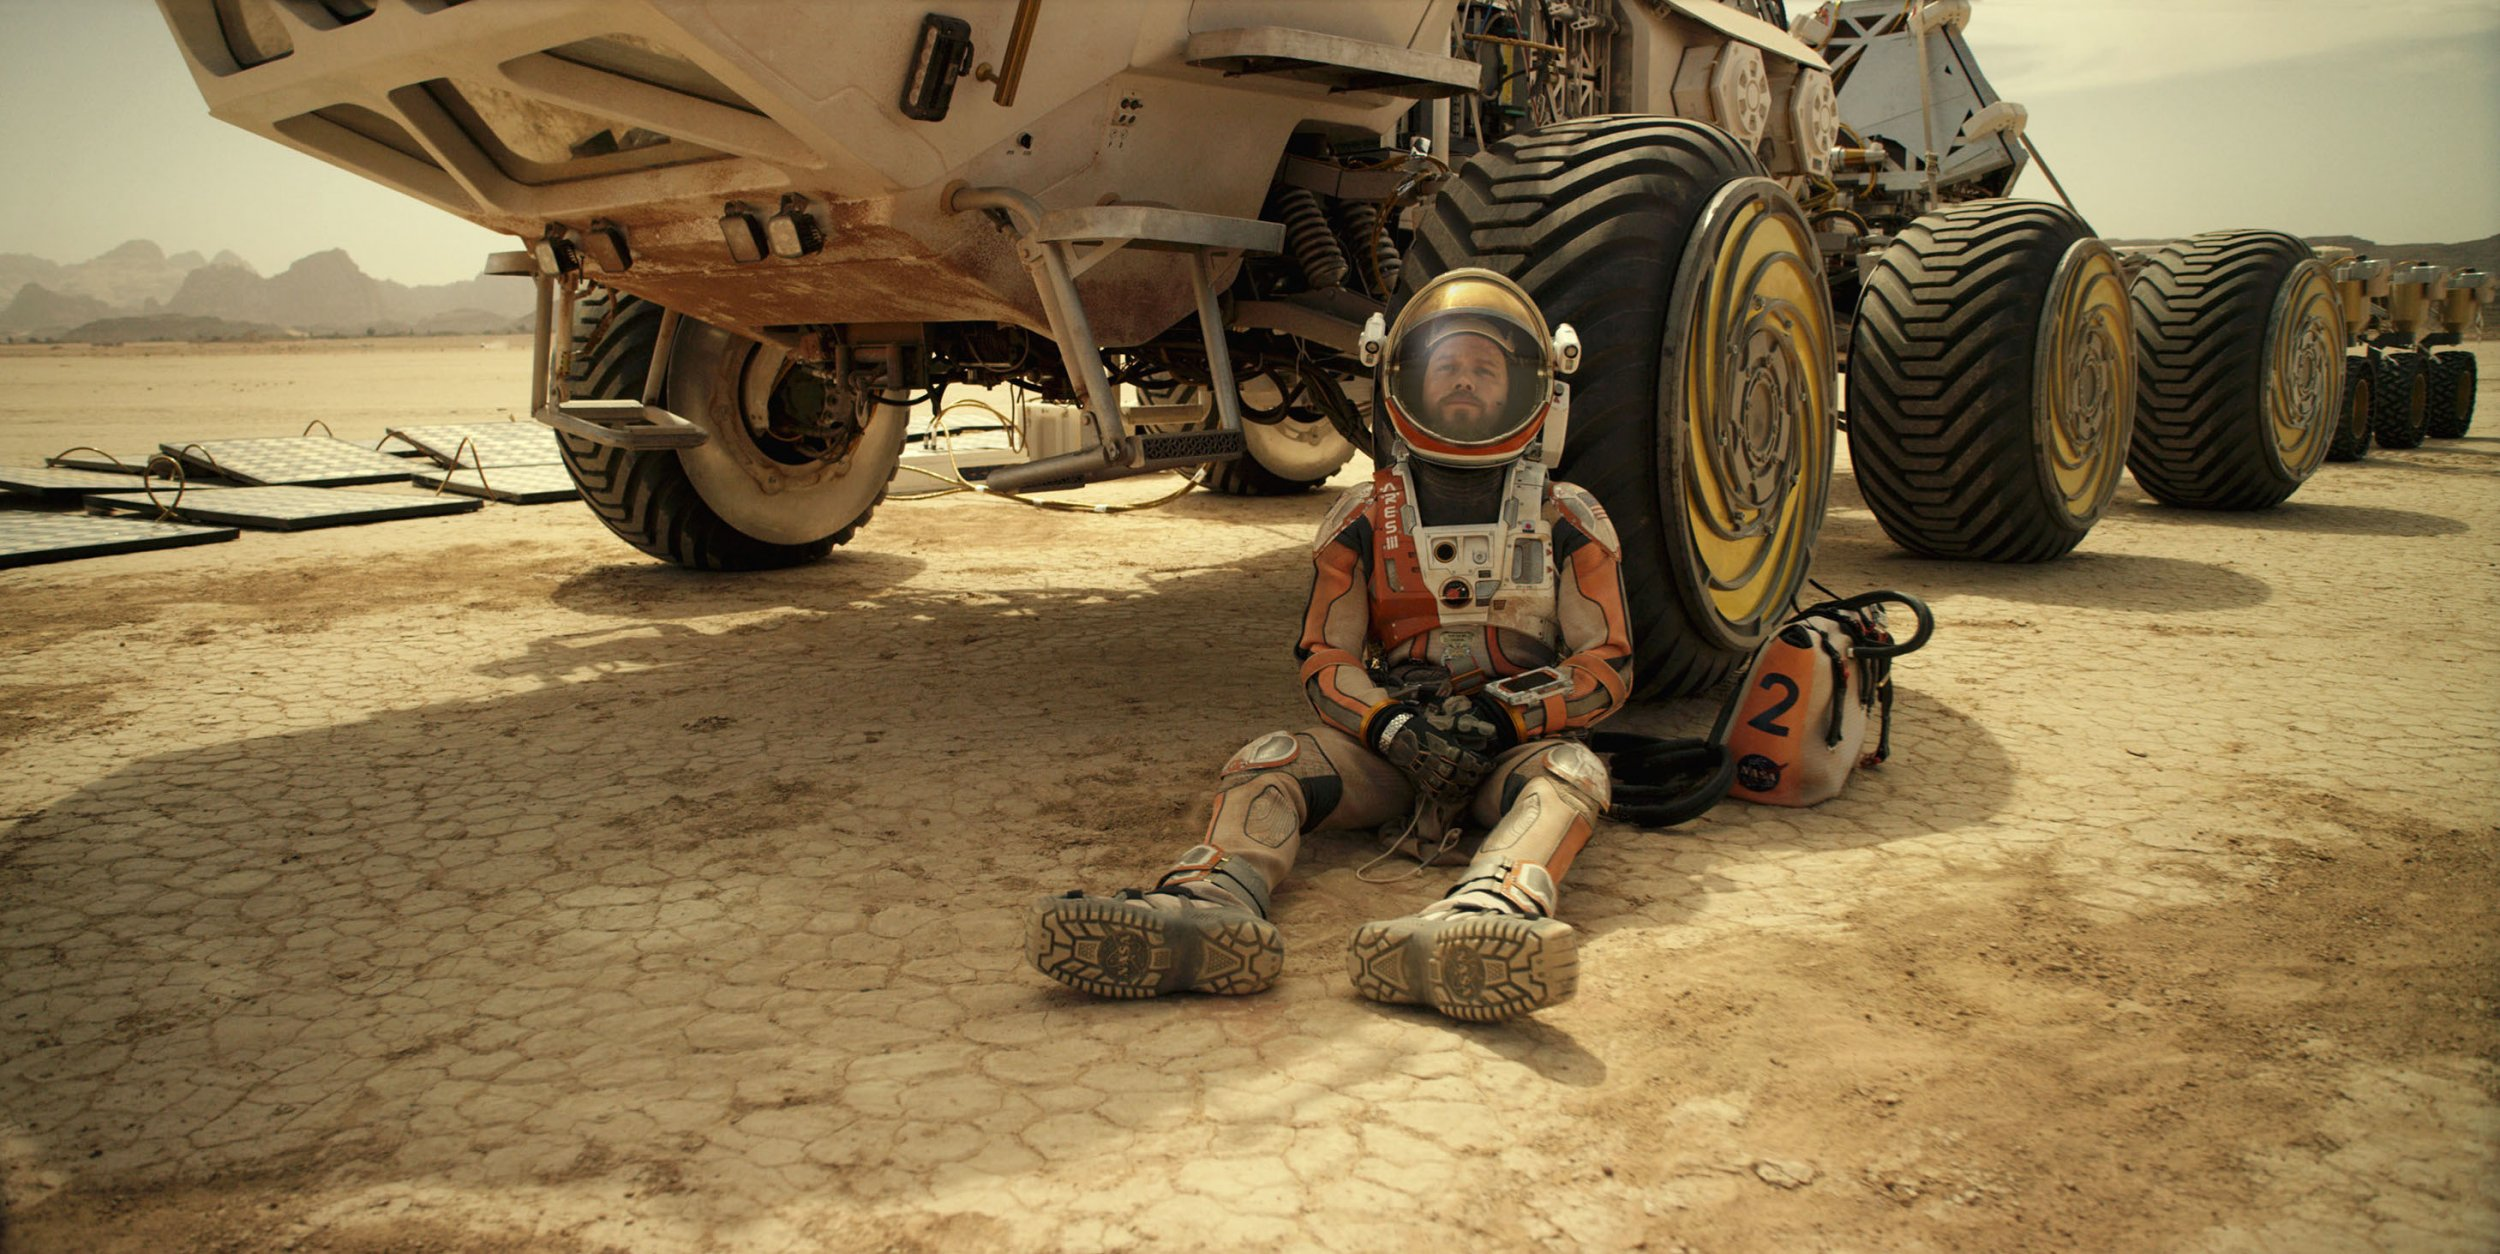 the-martian-TIF_RSS_0009_fr_n_left-1001R_rgb